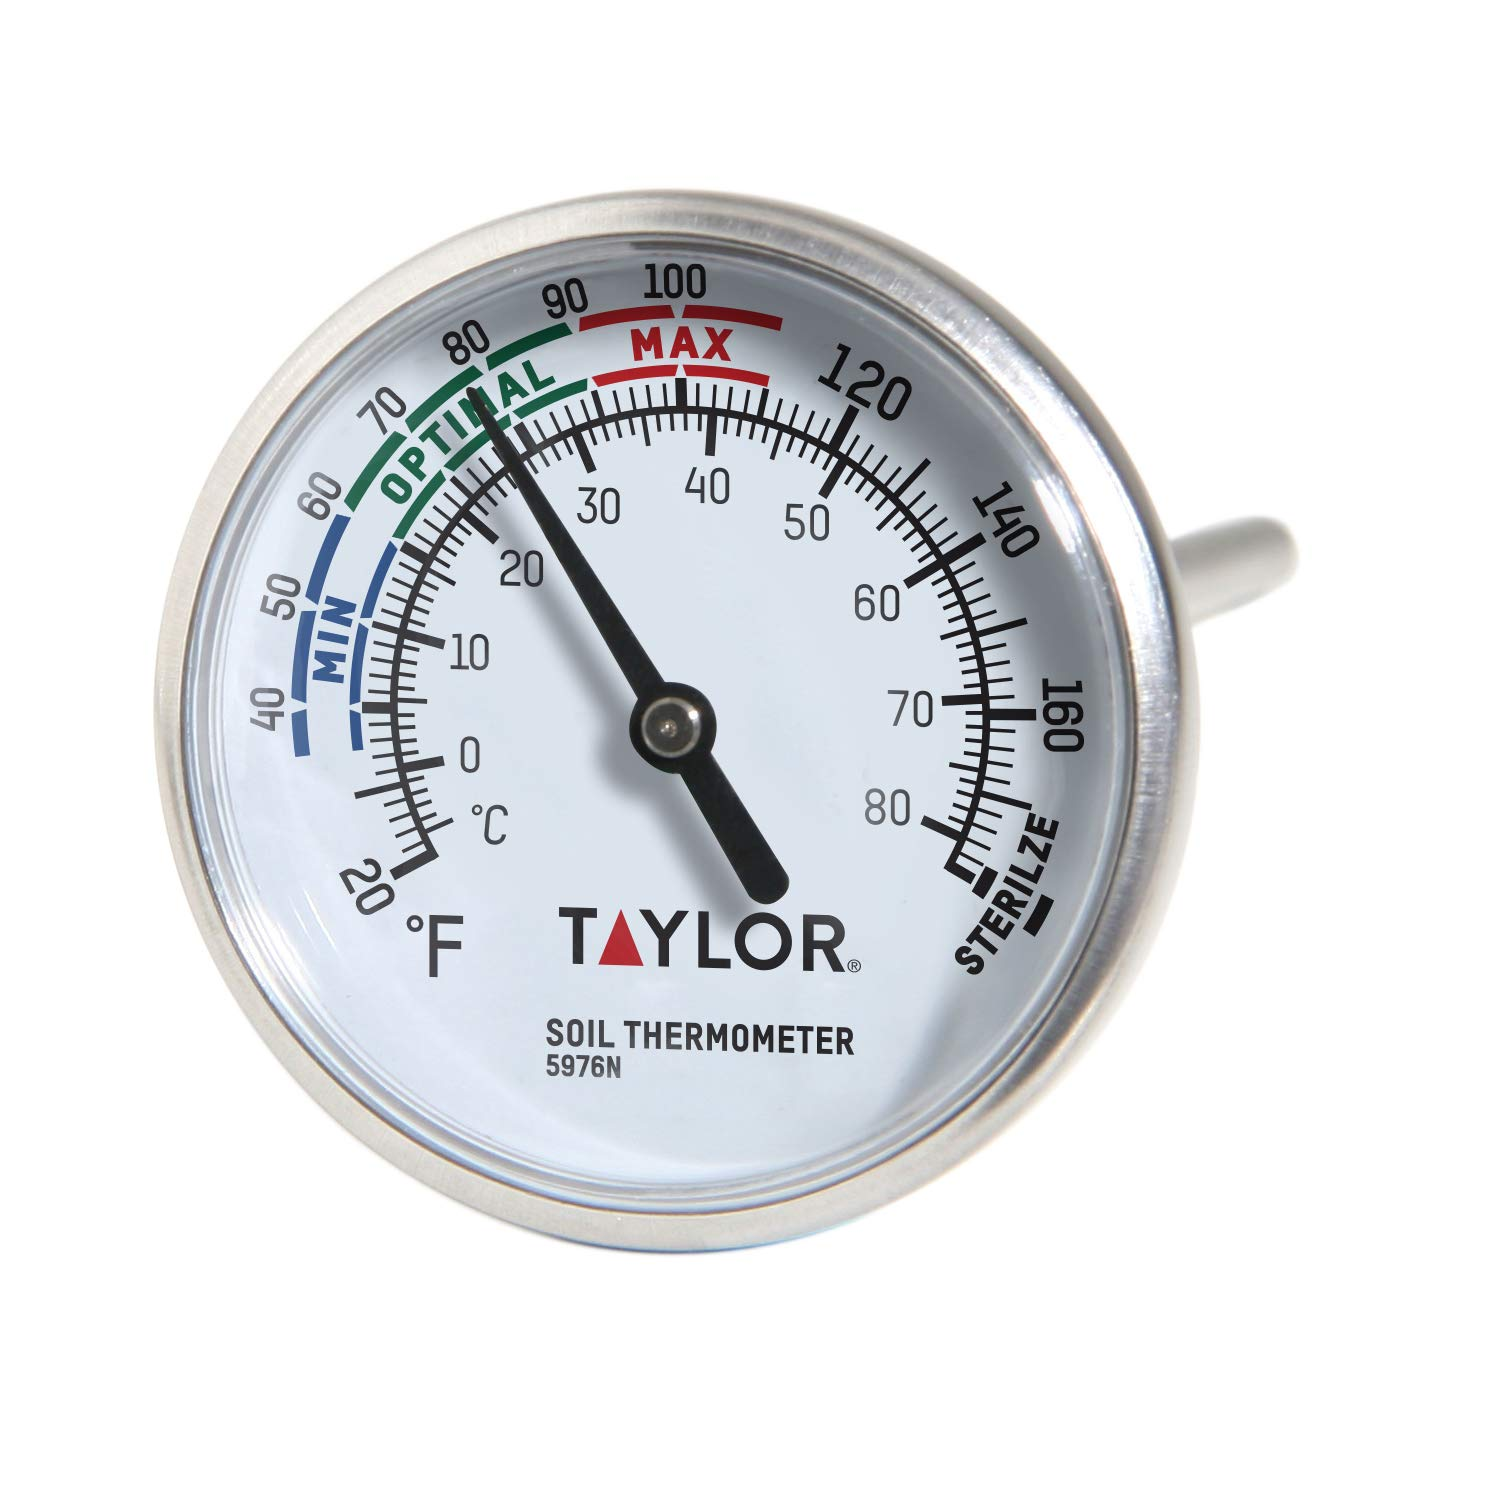 Taylor Precision Products - 5976N B0030JWAVA Soil Testing Thermometer, 4